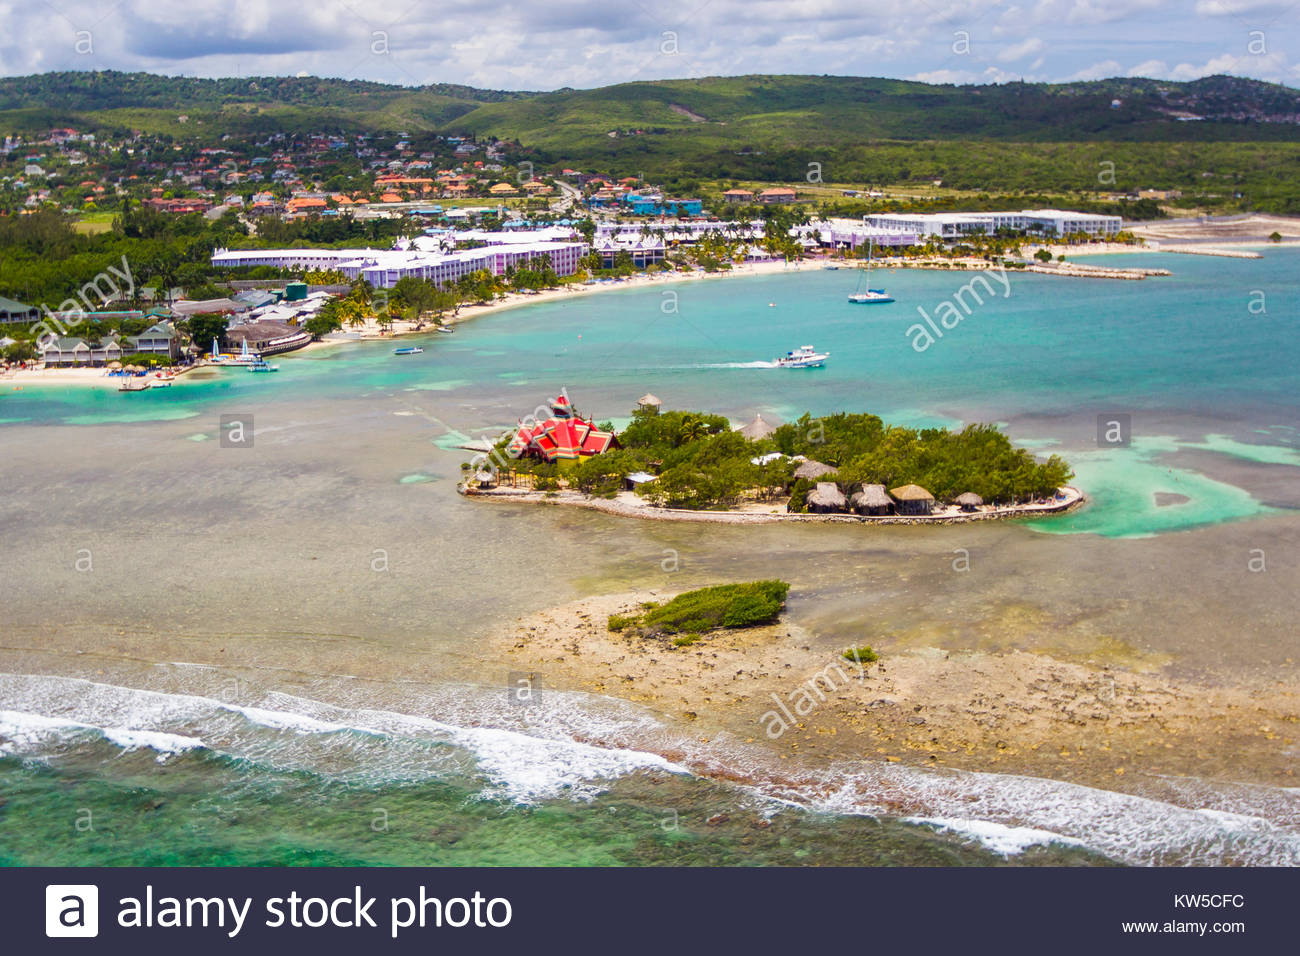 An aerial view of the Sandals Royal Caribbean island resort in Montego Bay, Jamaica. - Stock Image